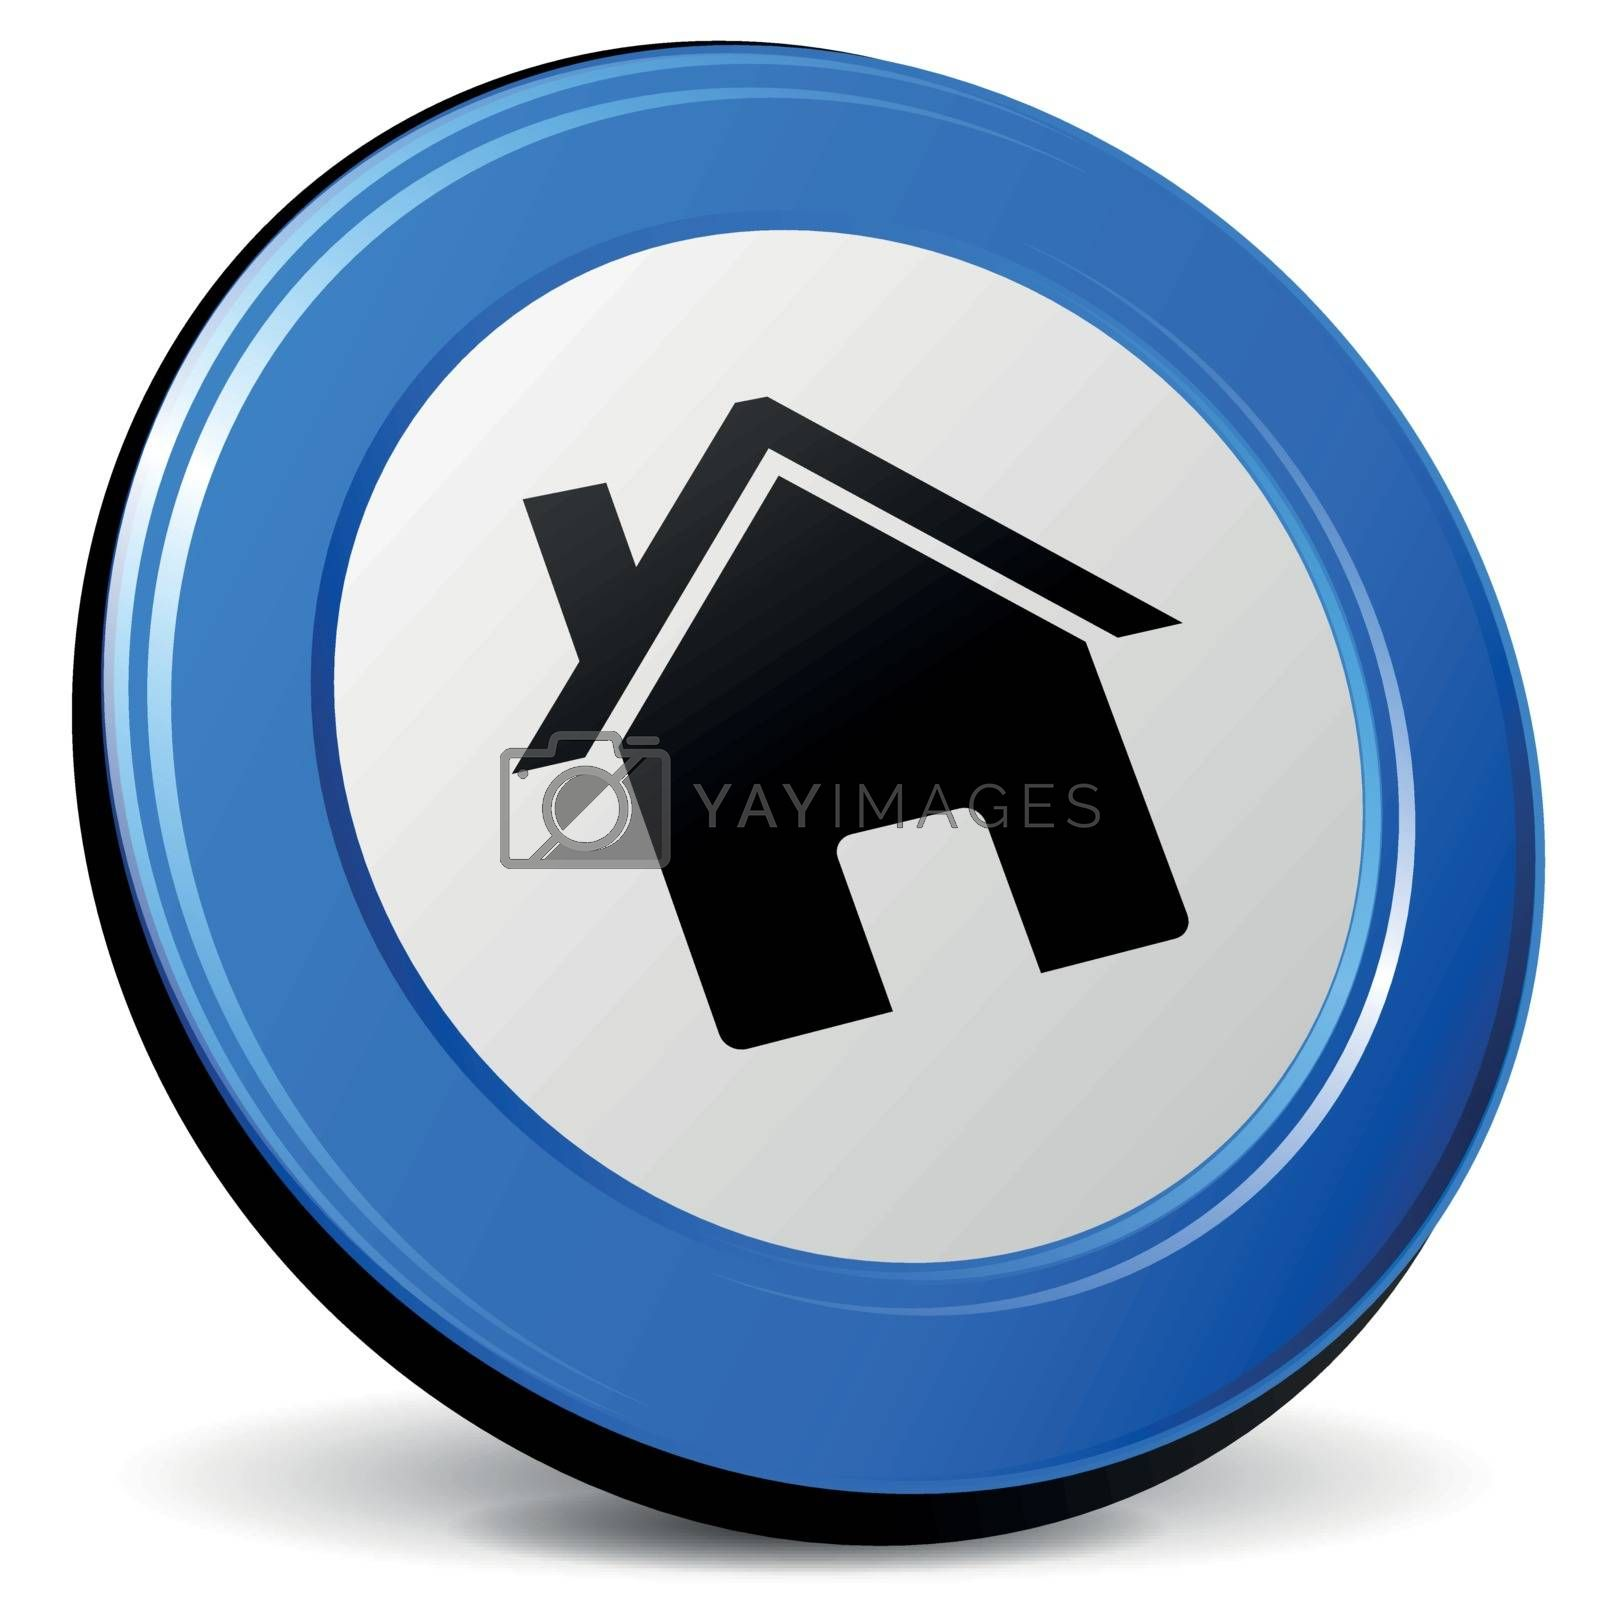 Royalty free image of Vector home icon by nickylarson974